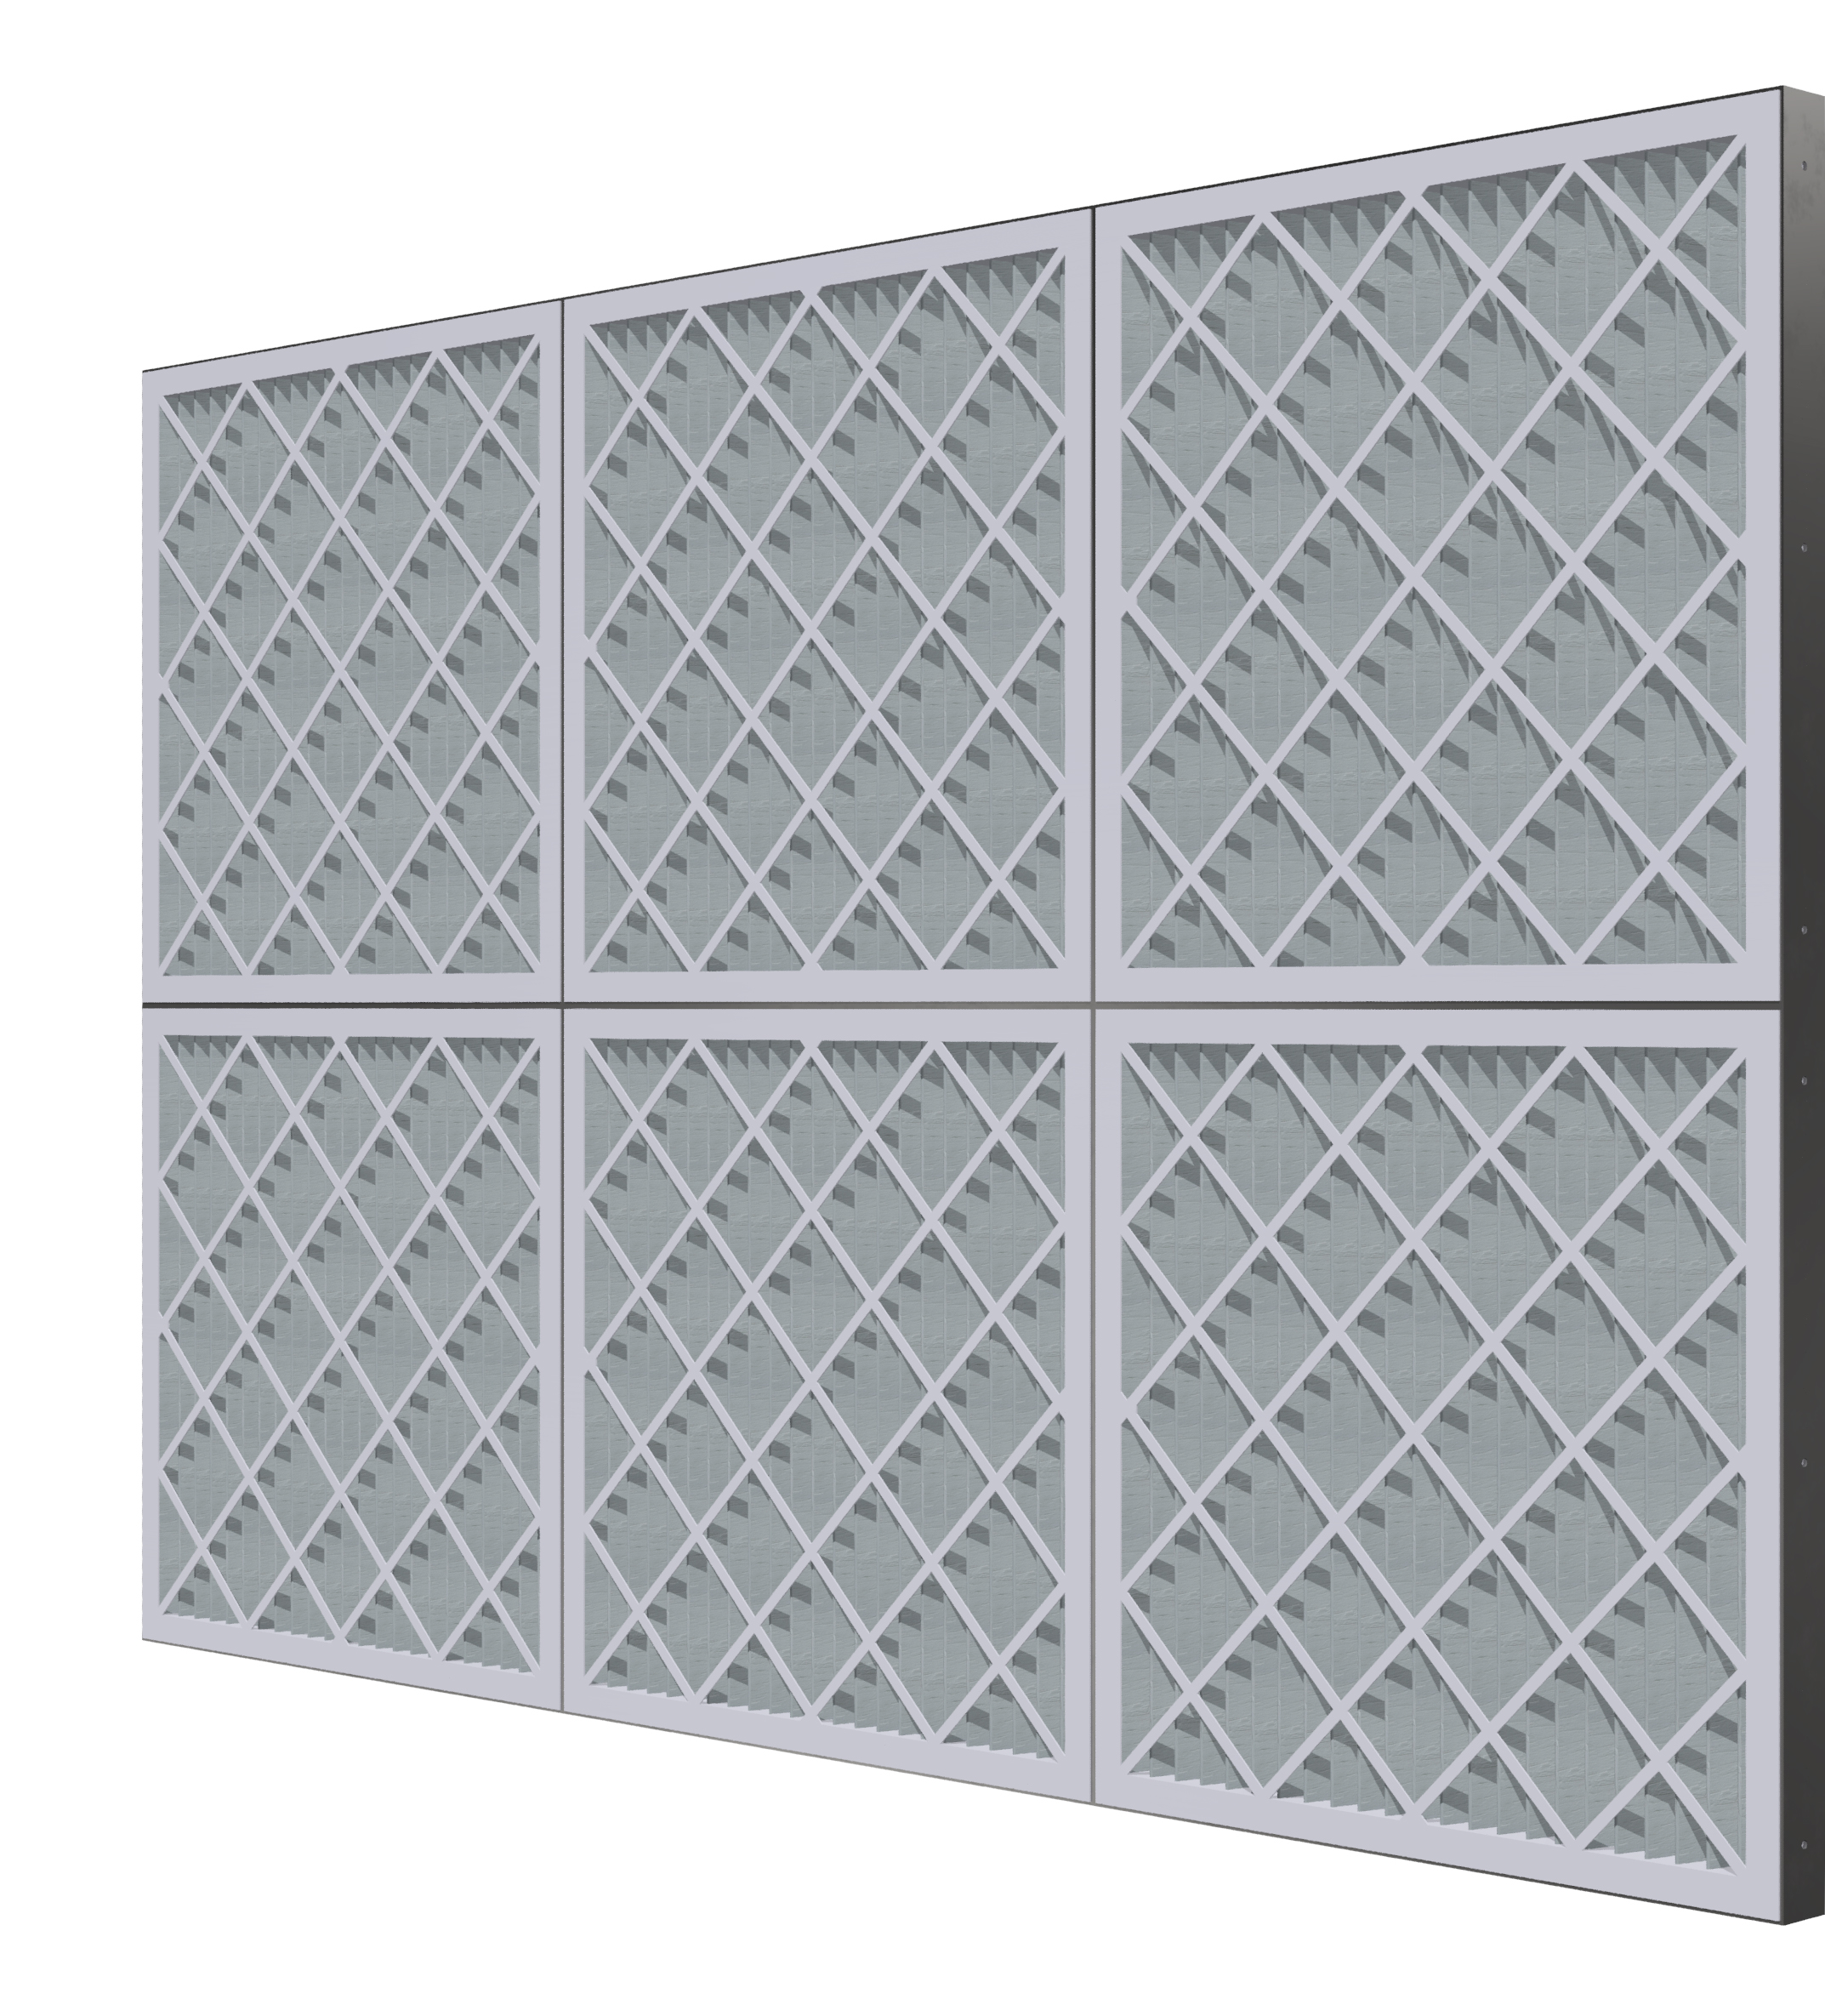 Air Filtration System - filtreation section 22